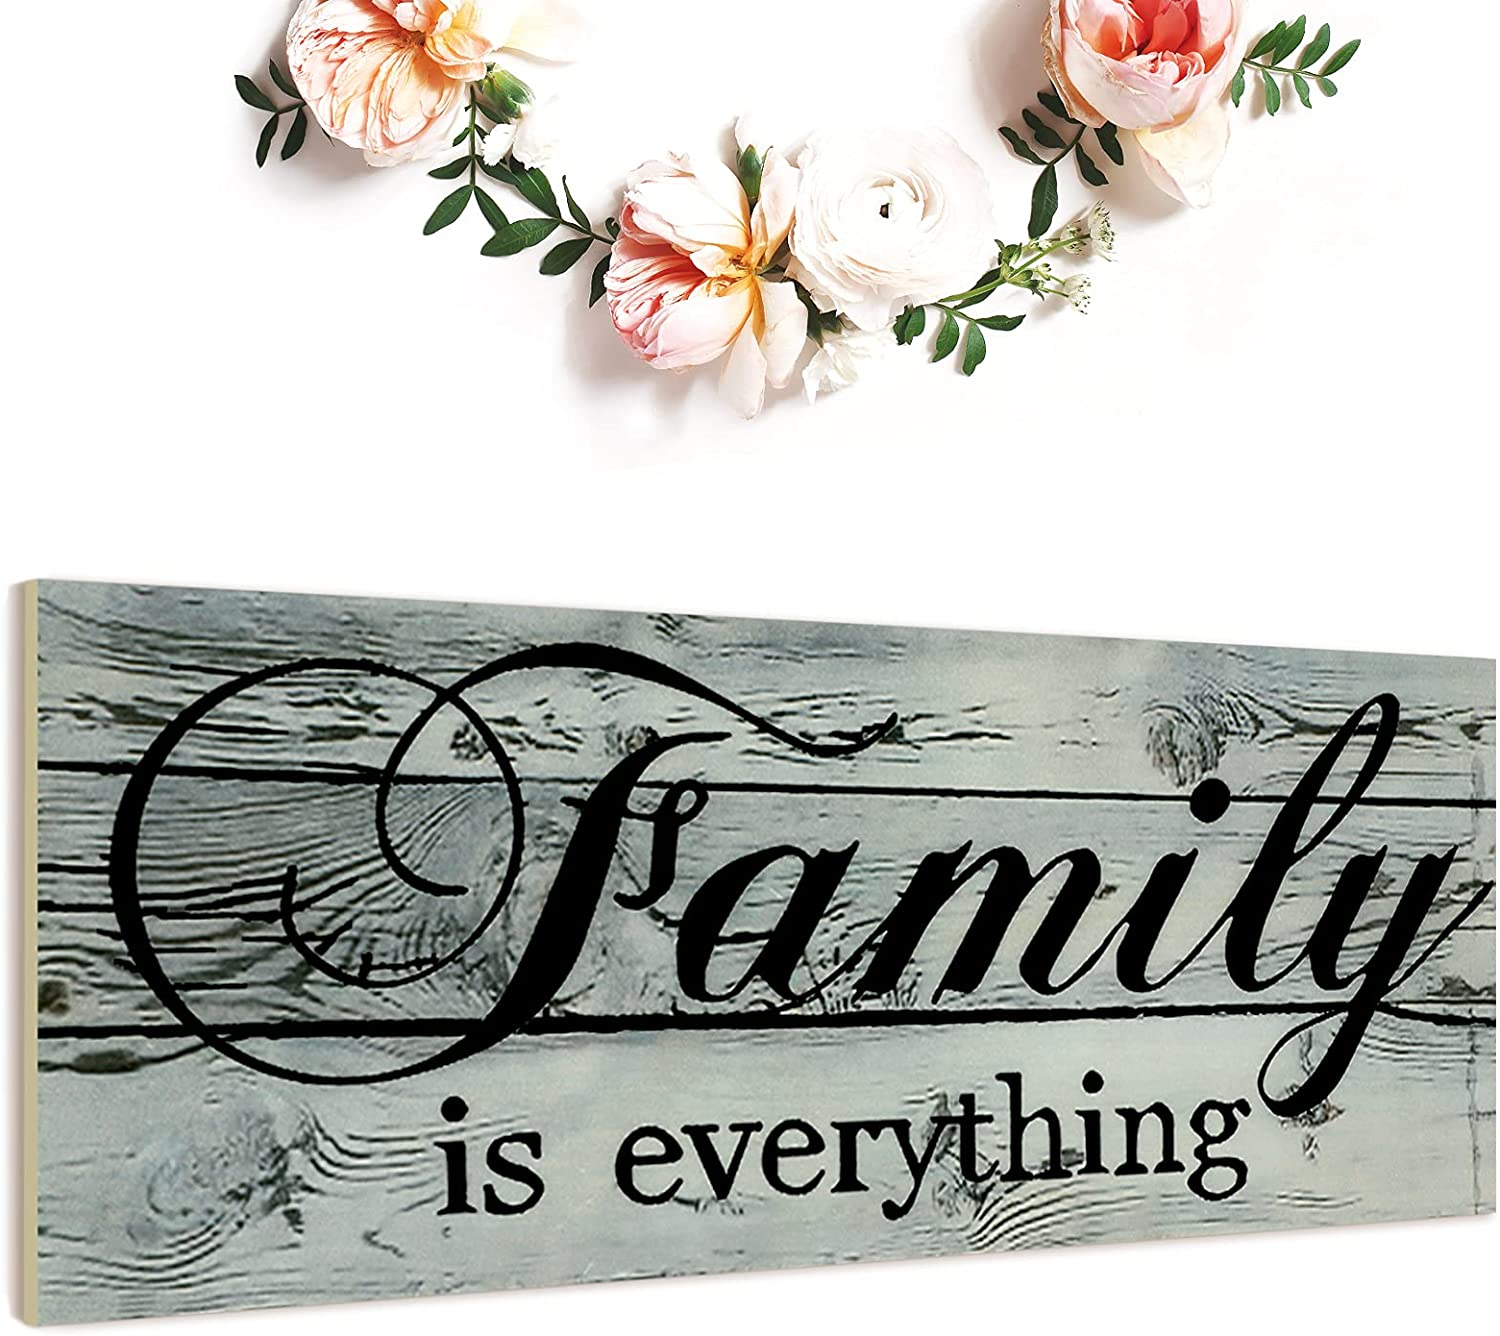 Jetec Family Prints Wood Signs Family is Everything Home Wall Decorations Wood Wall Decor Sign for Home Farmhouse Living Room Kitchen Dining Bedroom Bathroom (Blue-Gray)